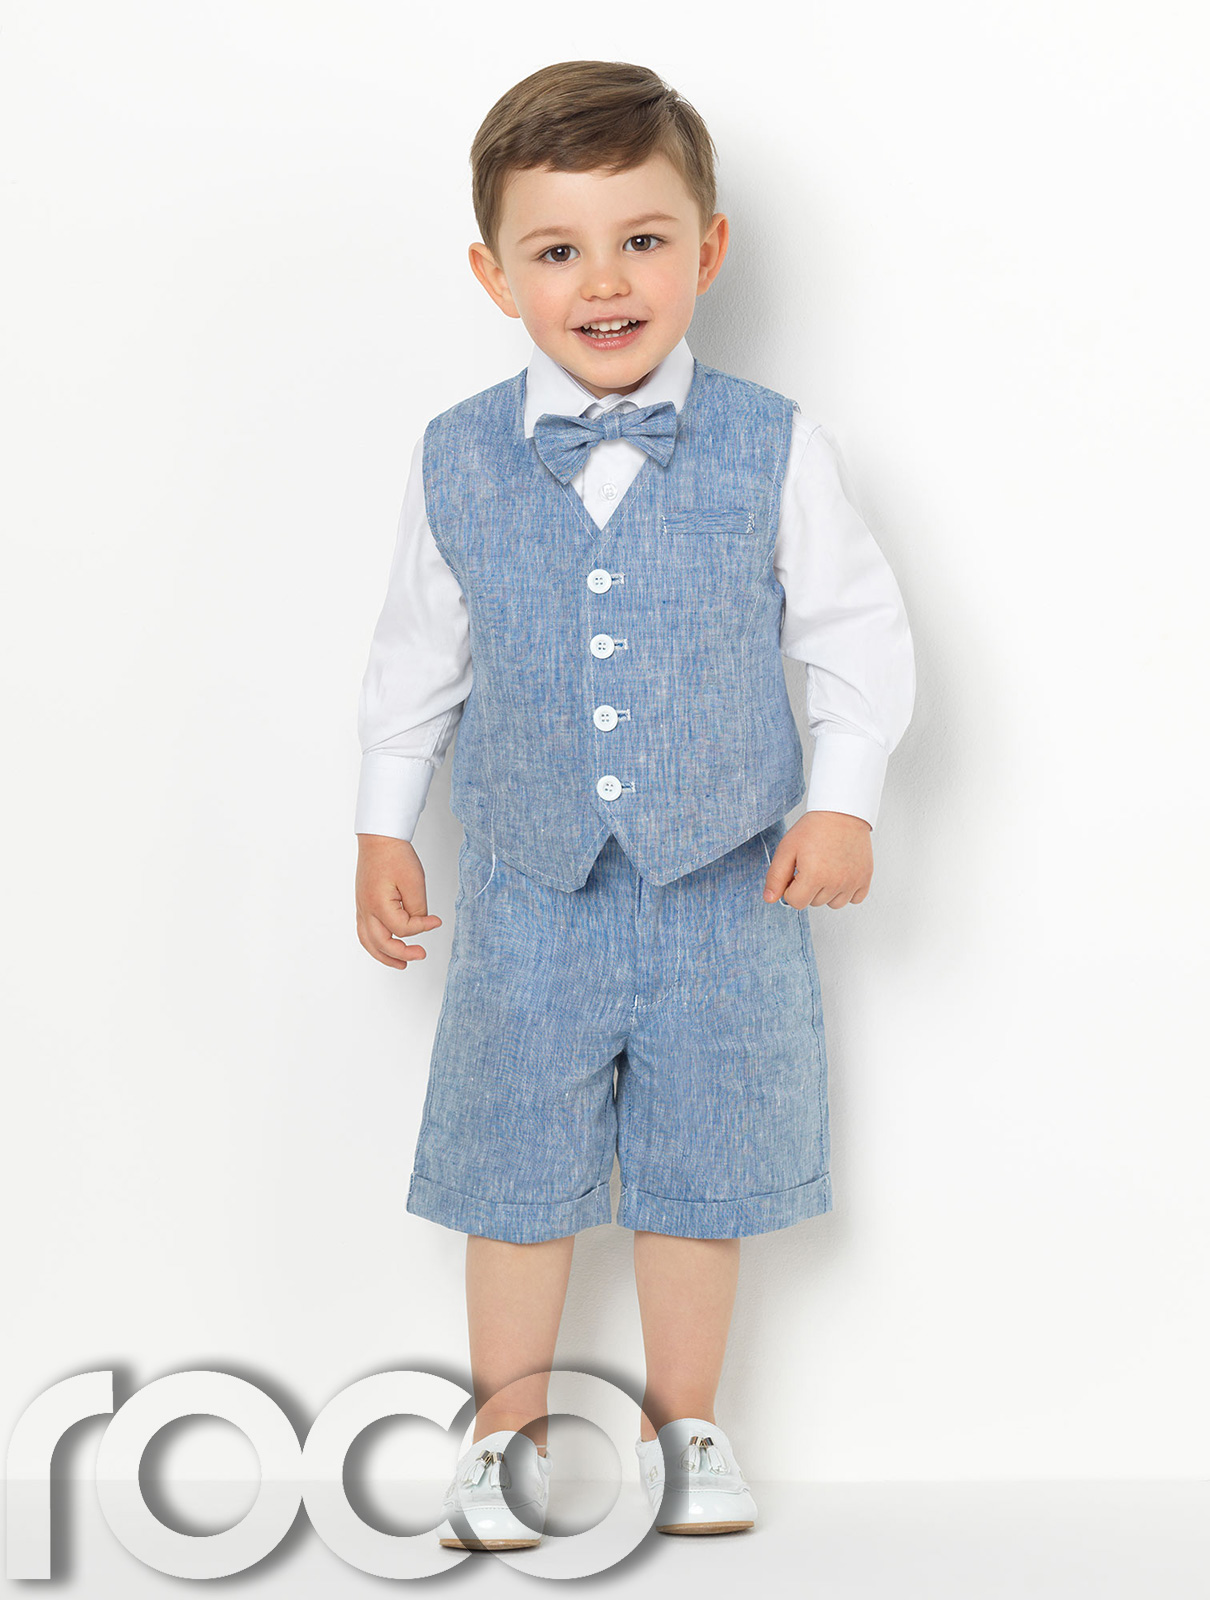 Luxury Boys Linen Suits For Weddings Composition - All Wedding ...